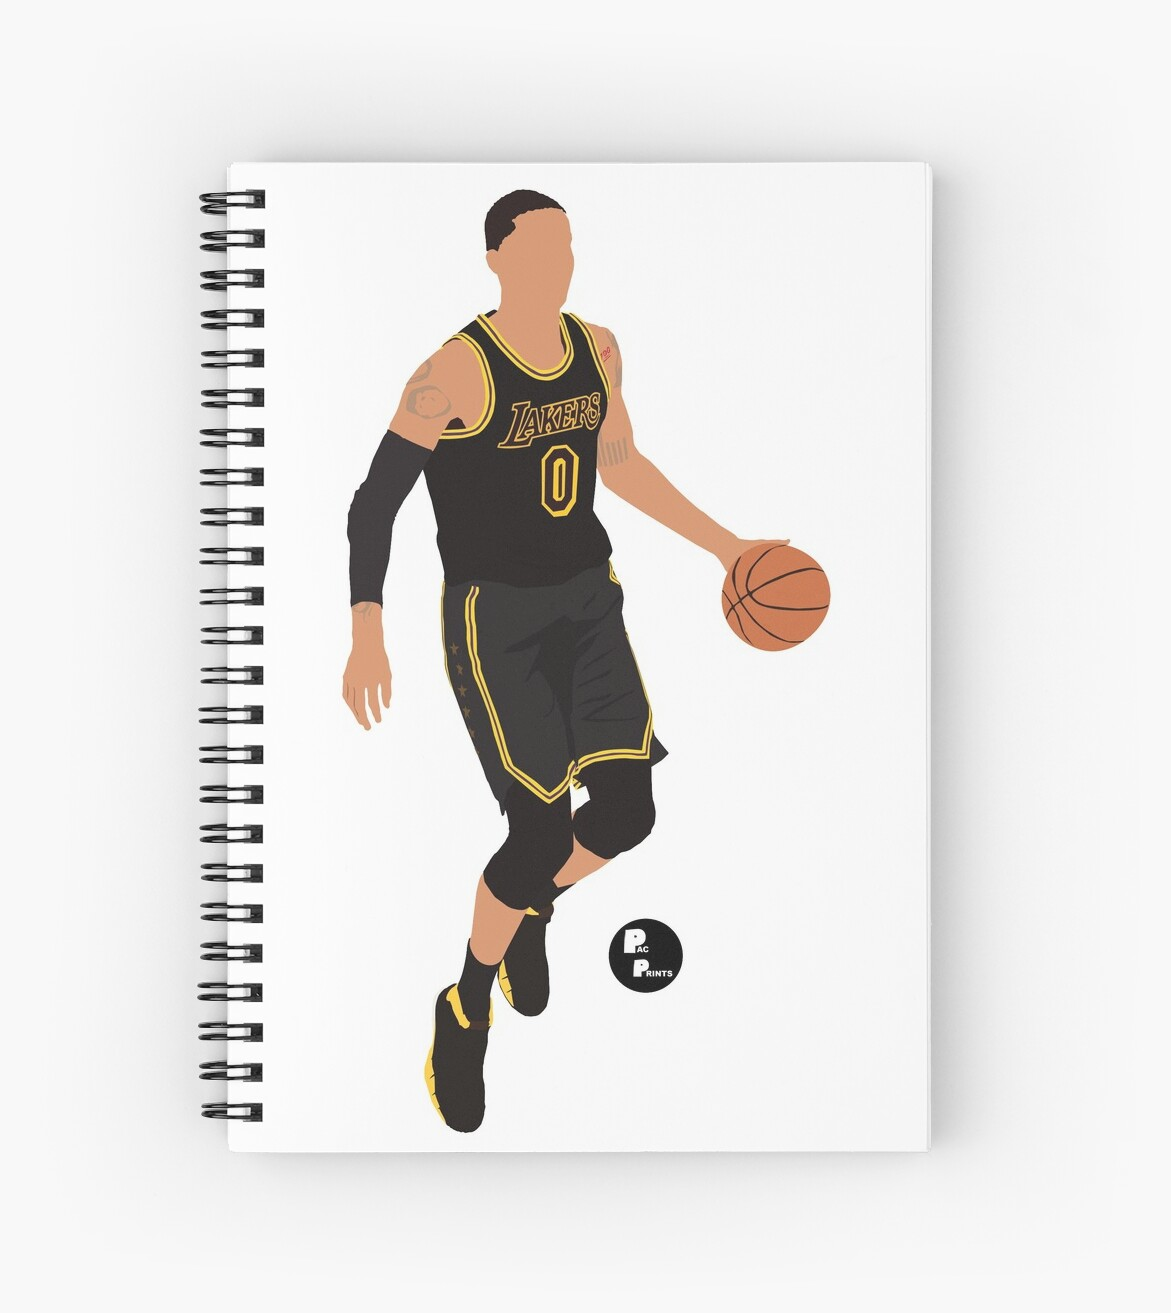 official photos 2d588 905e0 'Kyle Kuzma 'Black Mamba' Black Lakers Minimalist Art // Phone case,  shirts, stickers and more' Spiral Notebook by PacPrints